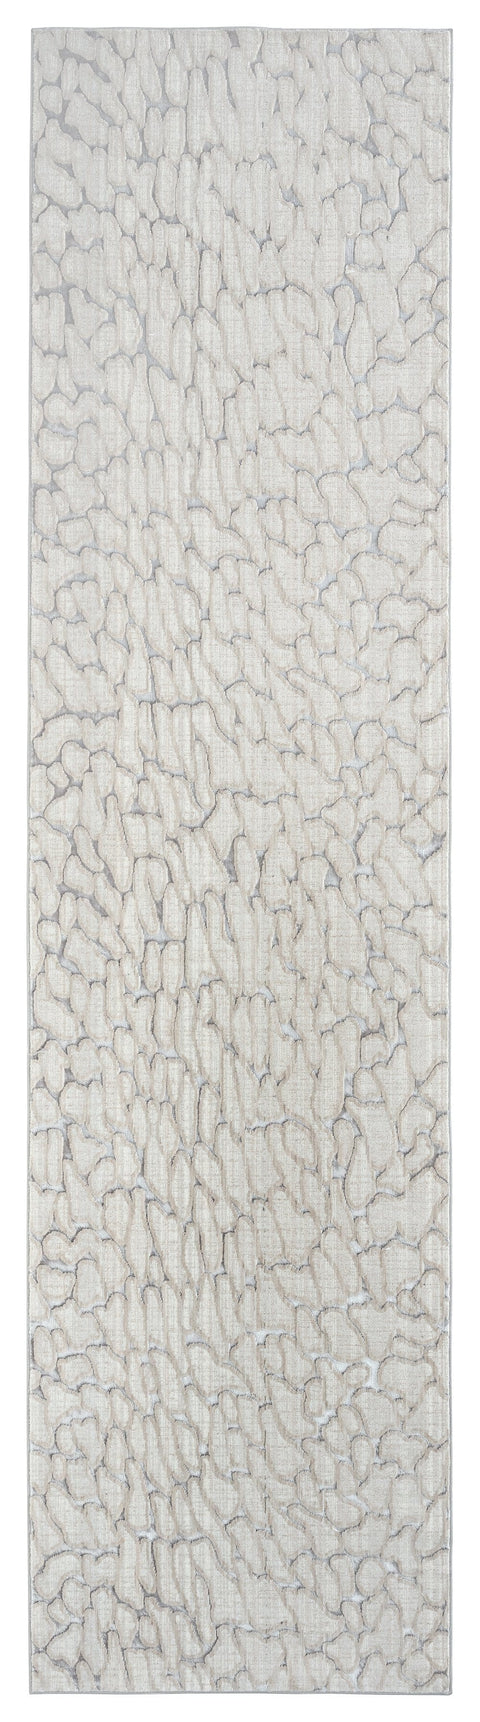 Sasha Ivory Cream and Grey Abstract Transitional Runner Rug